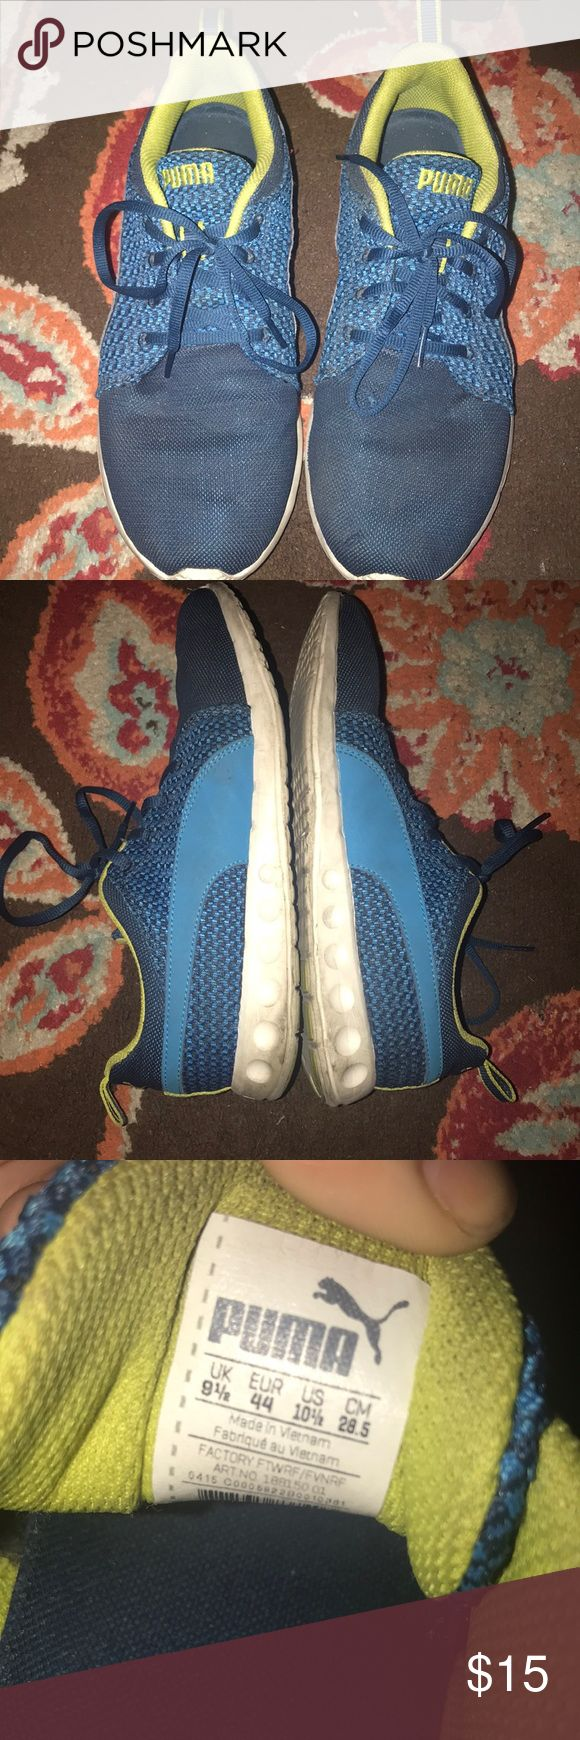 Mens PUMA sneakers Used as seen, still have life in them! Has small snag on left shoe as seen on pic Colors are lime green and blue Puma Shoes Athletic Shoes